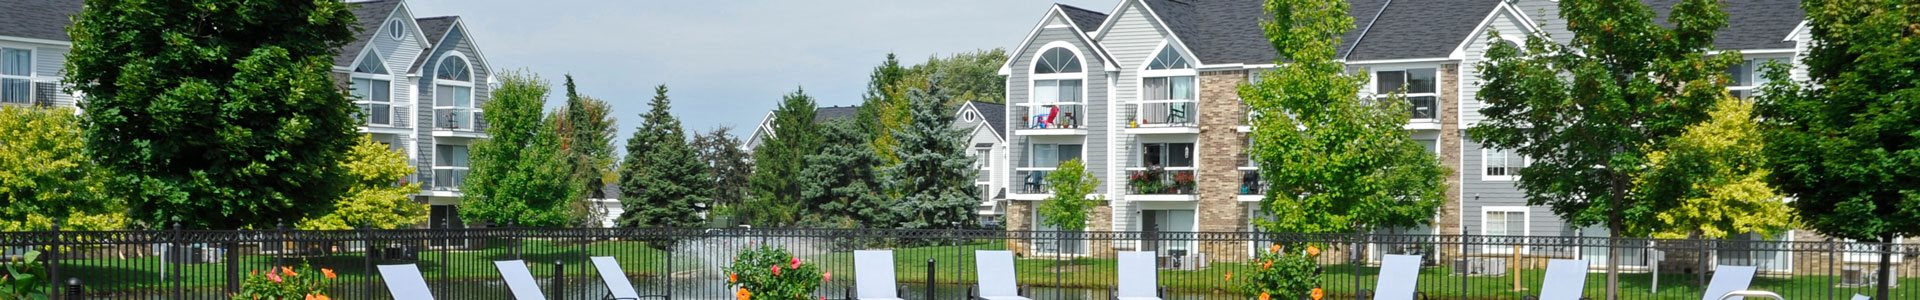 Downtown Wixom Apartments | Hillside Apartments